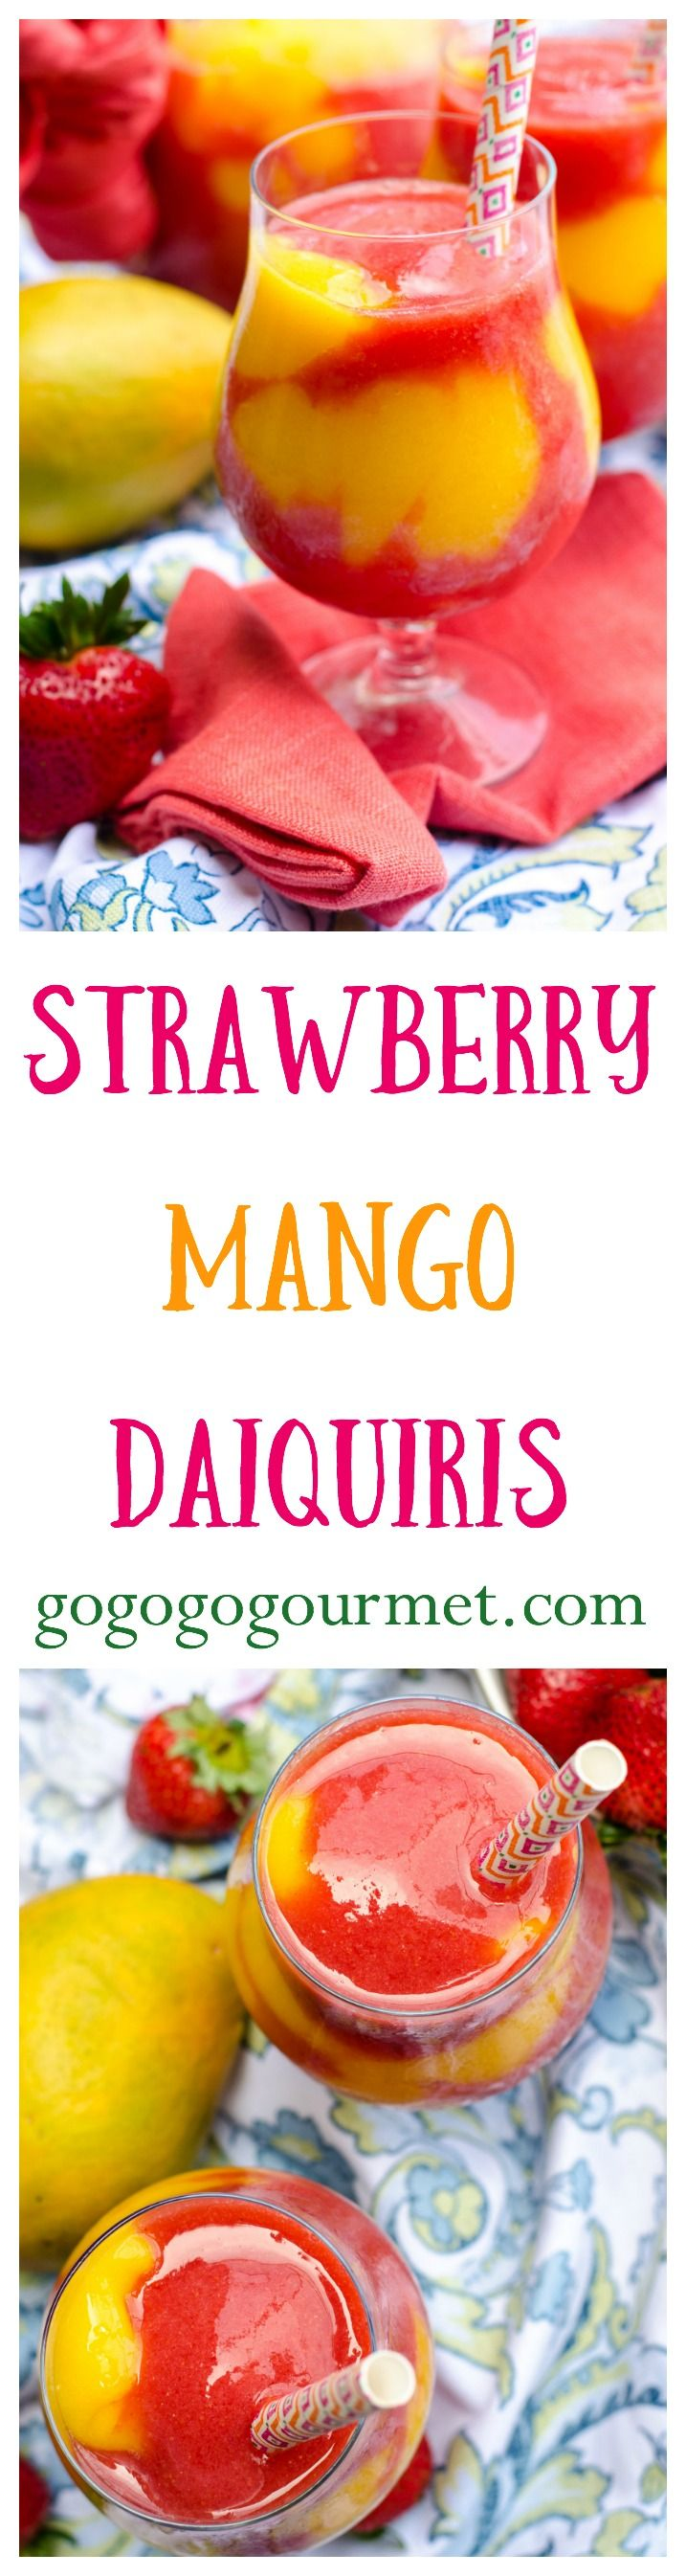 These Strawberry Mango Daiquiris are better than ANY concentrated mix- and just look at all that COLOR! | Go Go Go Gourmet @gogogogourmet